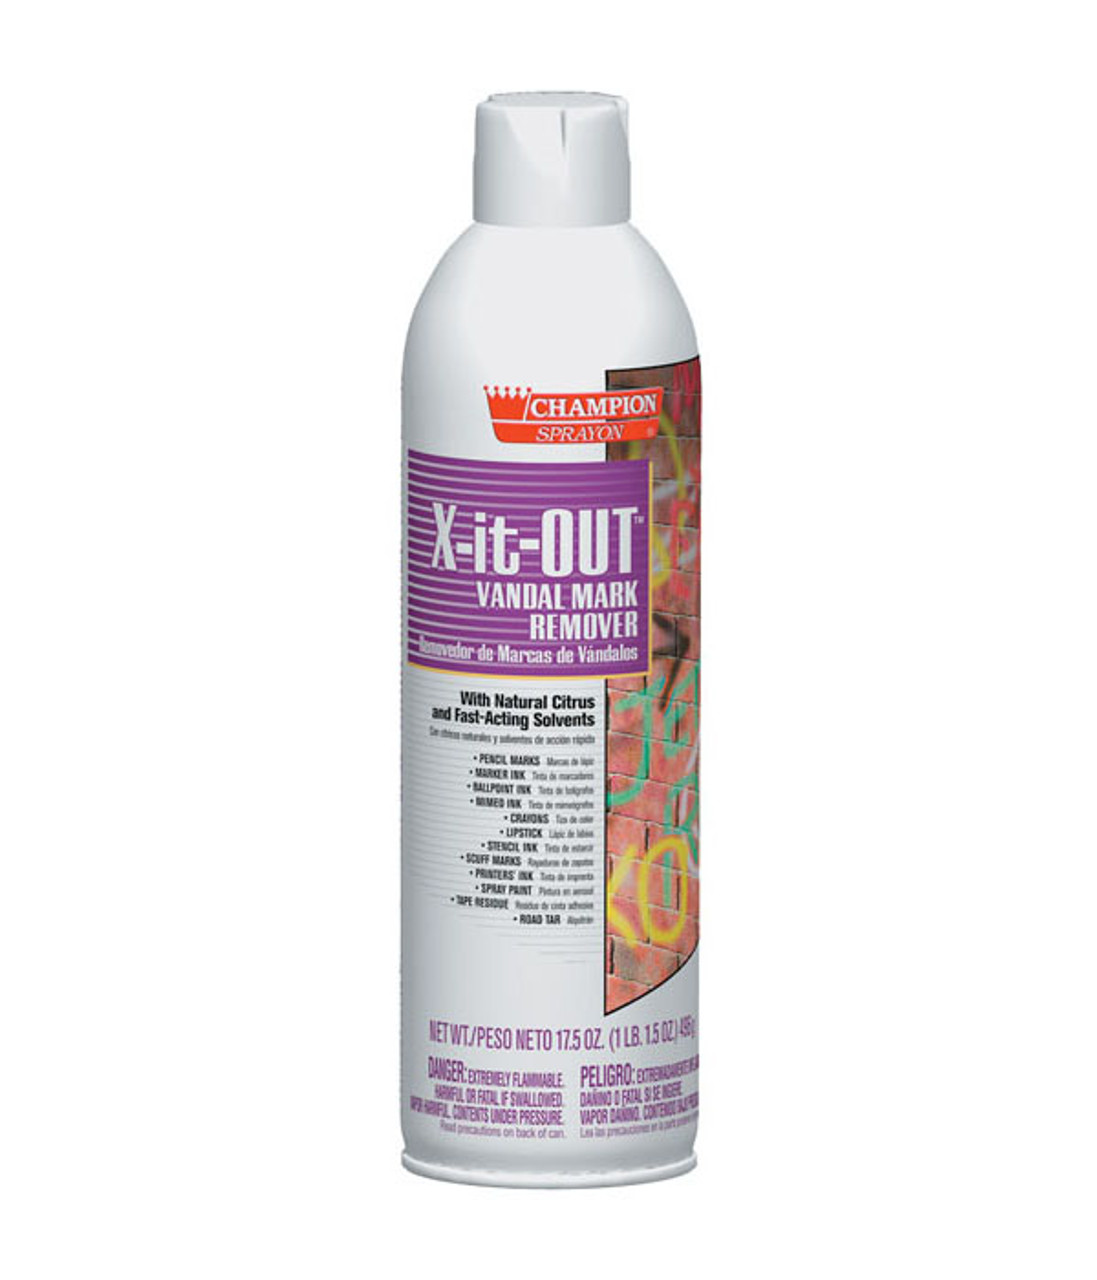 X-it Out Graffiti Remover